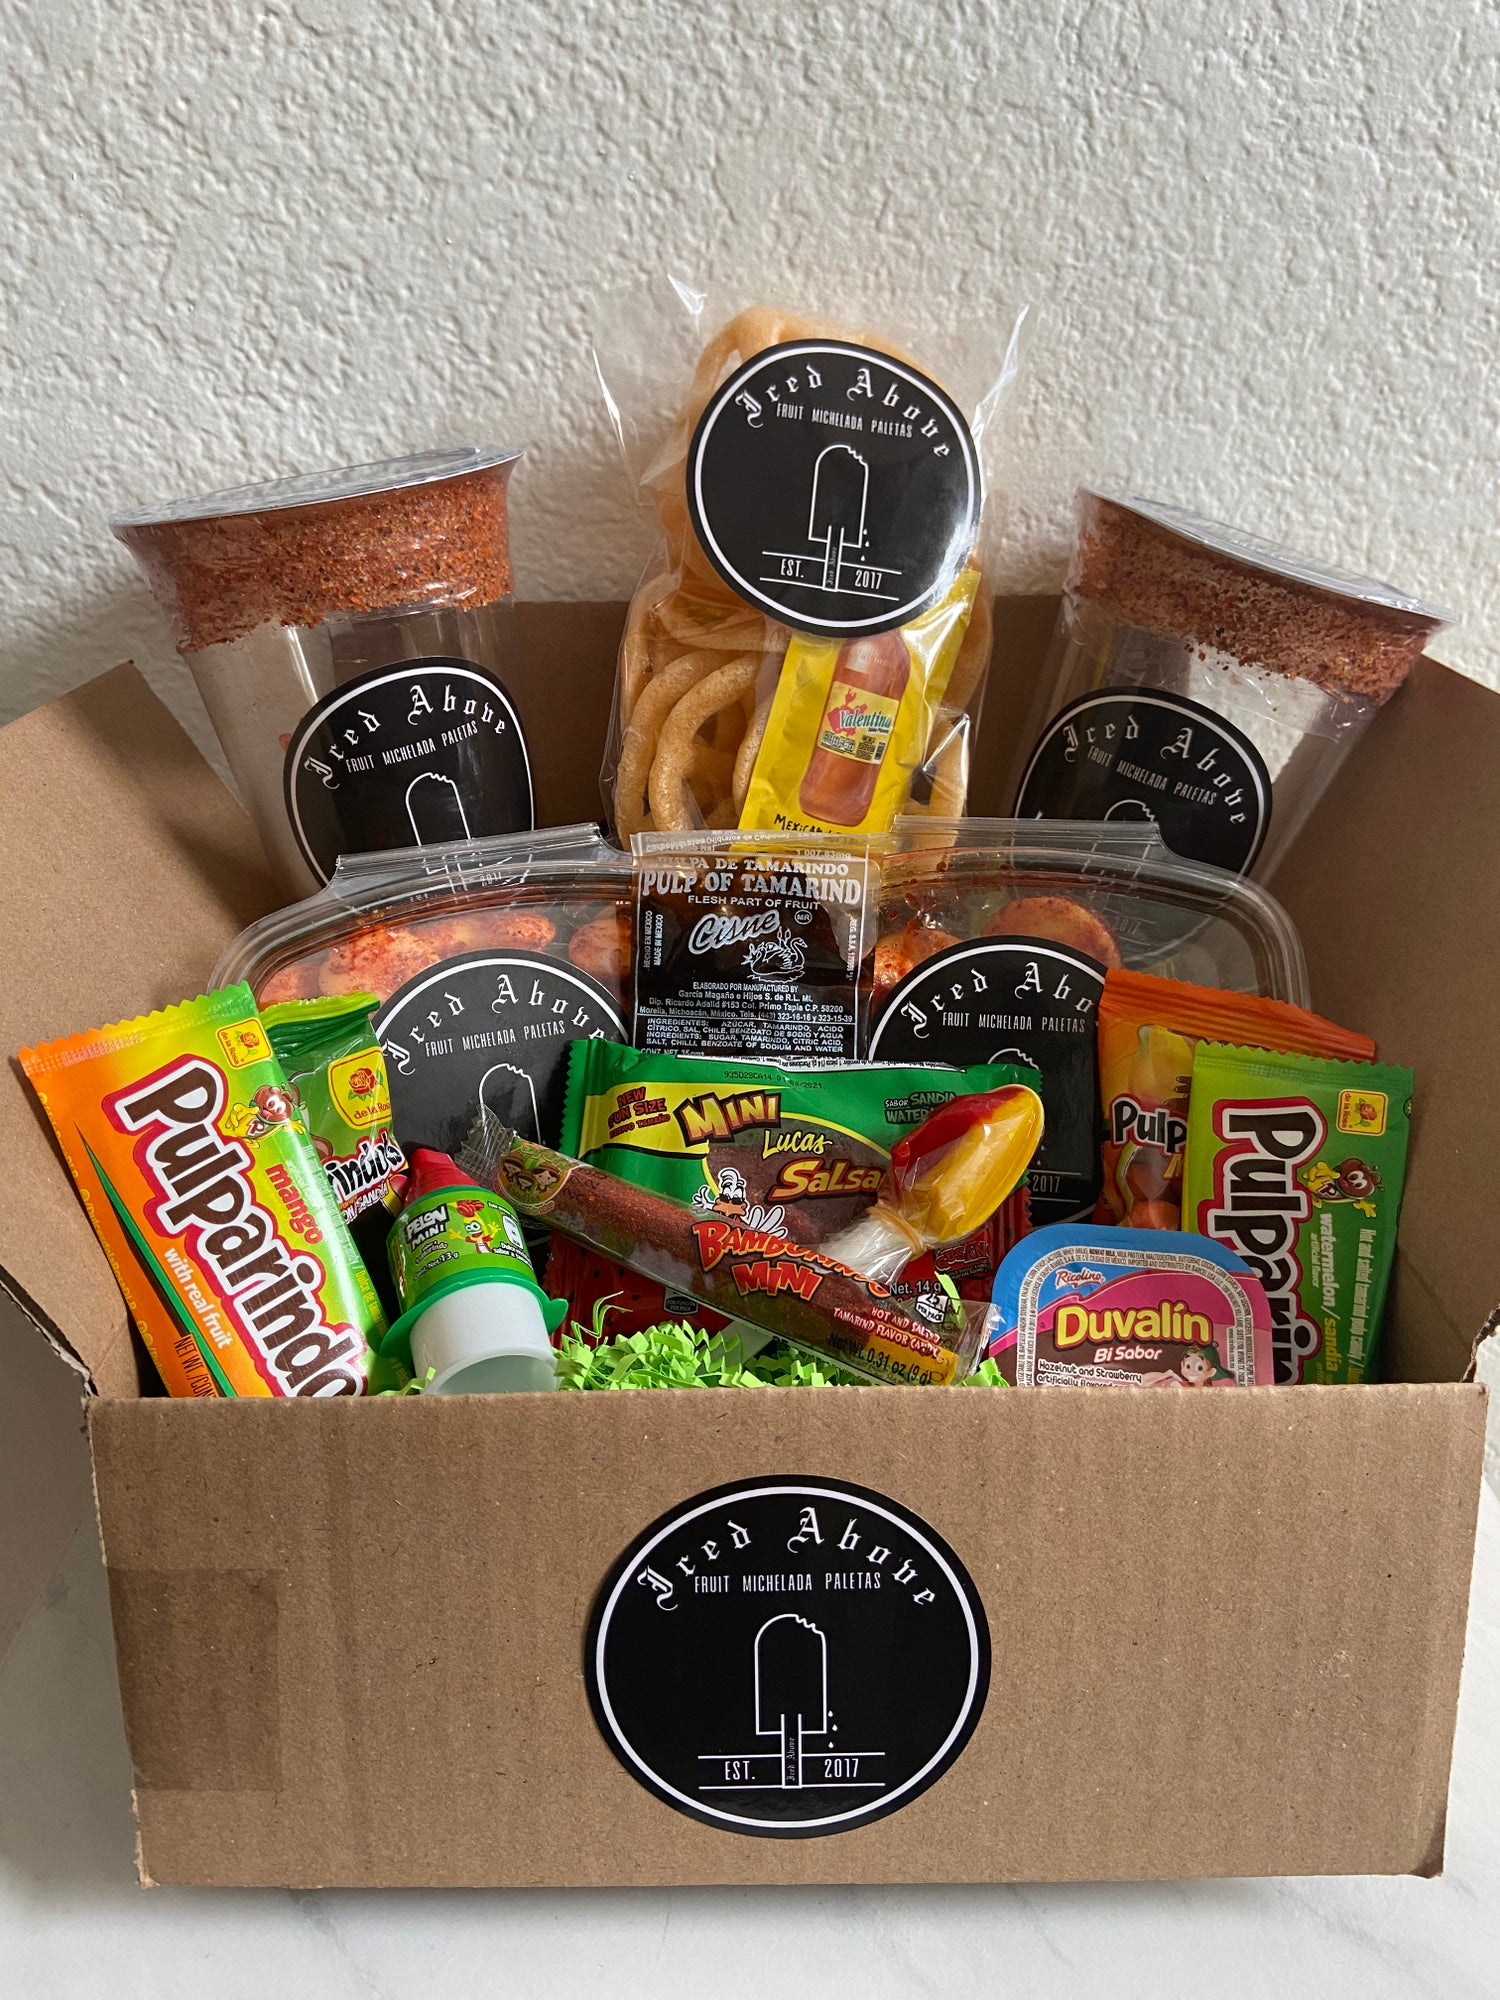 Image of Iced Above Snack Attack Box